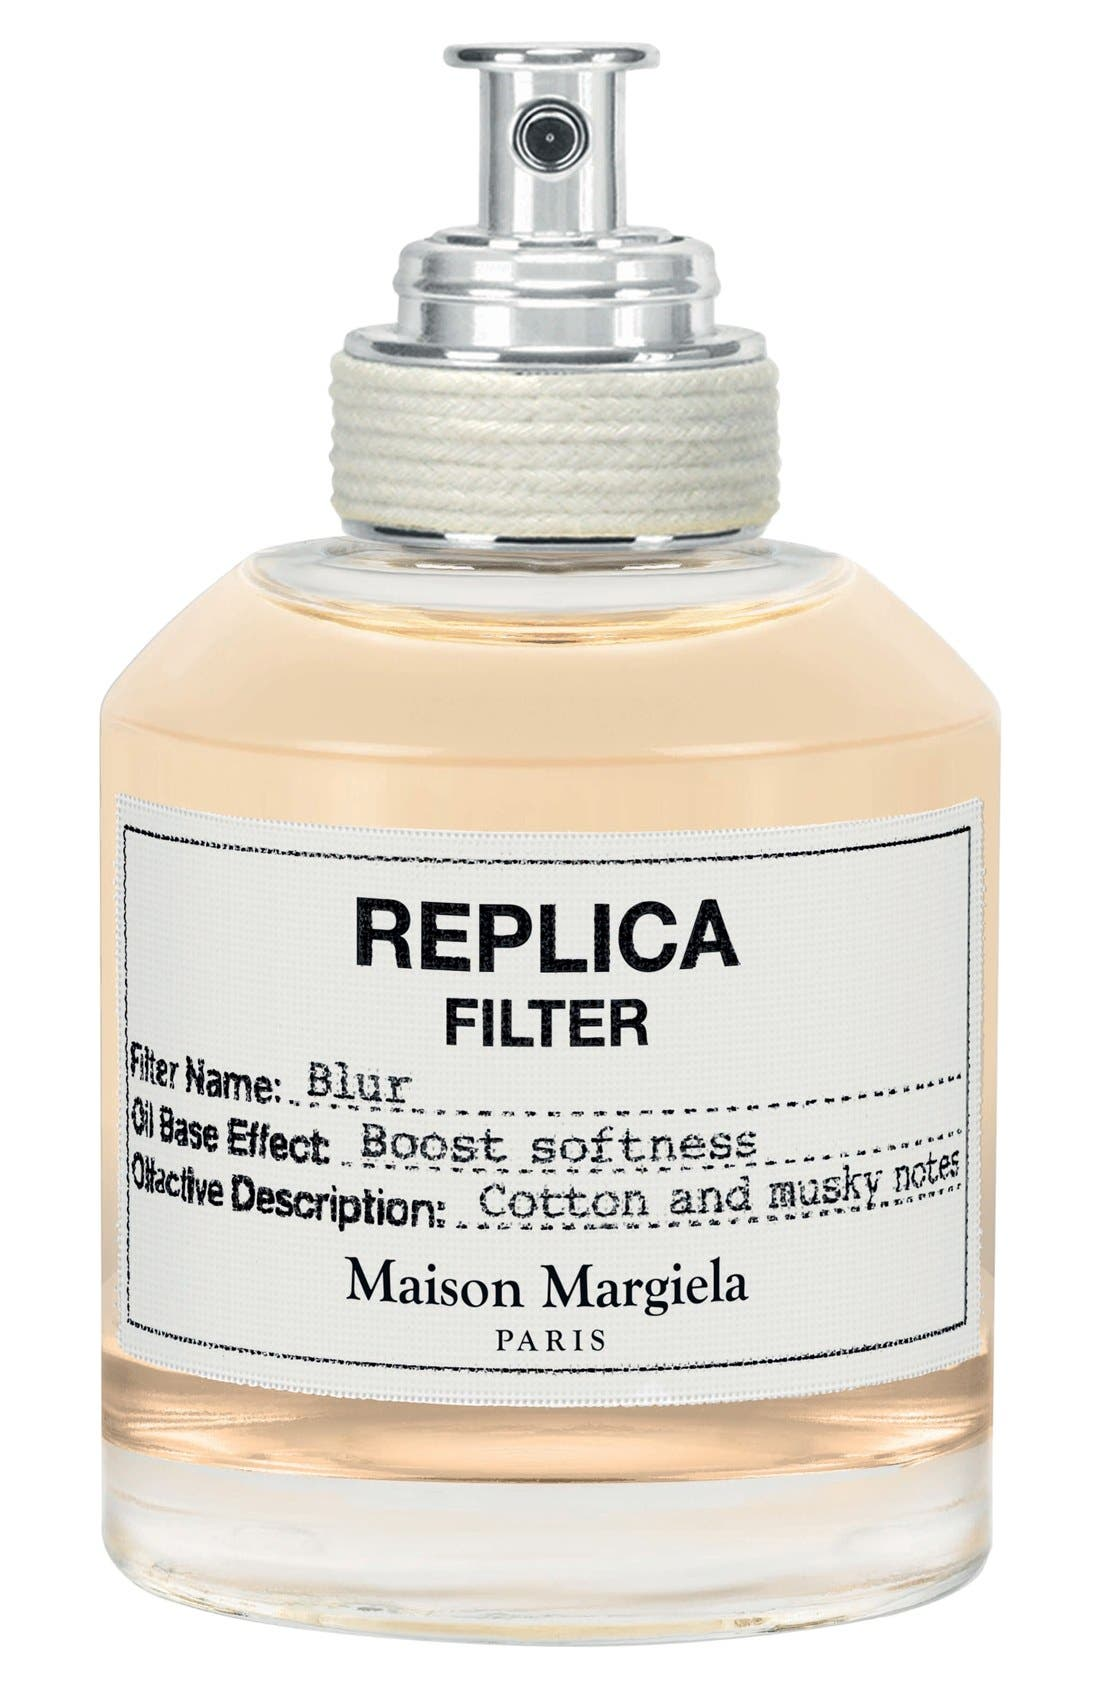 Maison Margiela Replica Filter Blur Fragrance Primer